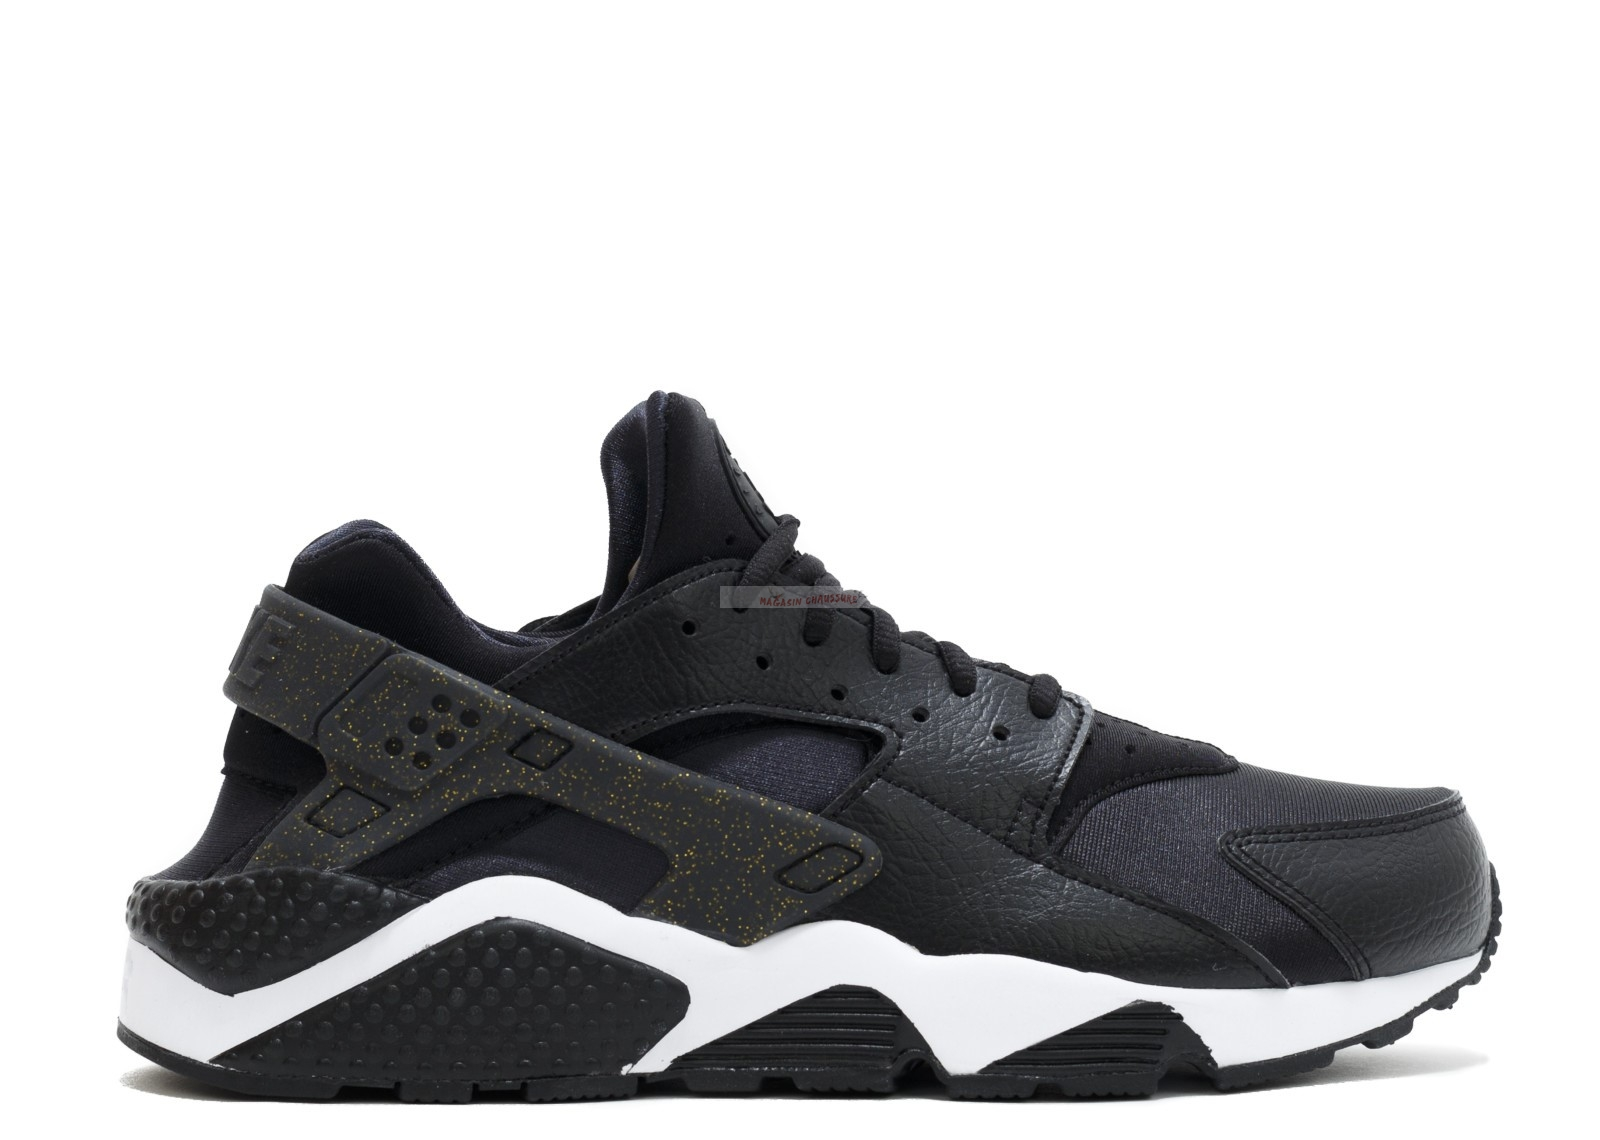 "Nike Air Huarache Run - Femme Prm ""Nfl"" Noir Or Blanc (845317-008) Chaussure de Basket"